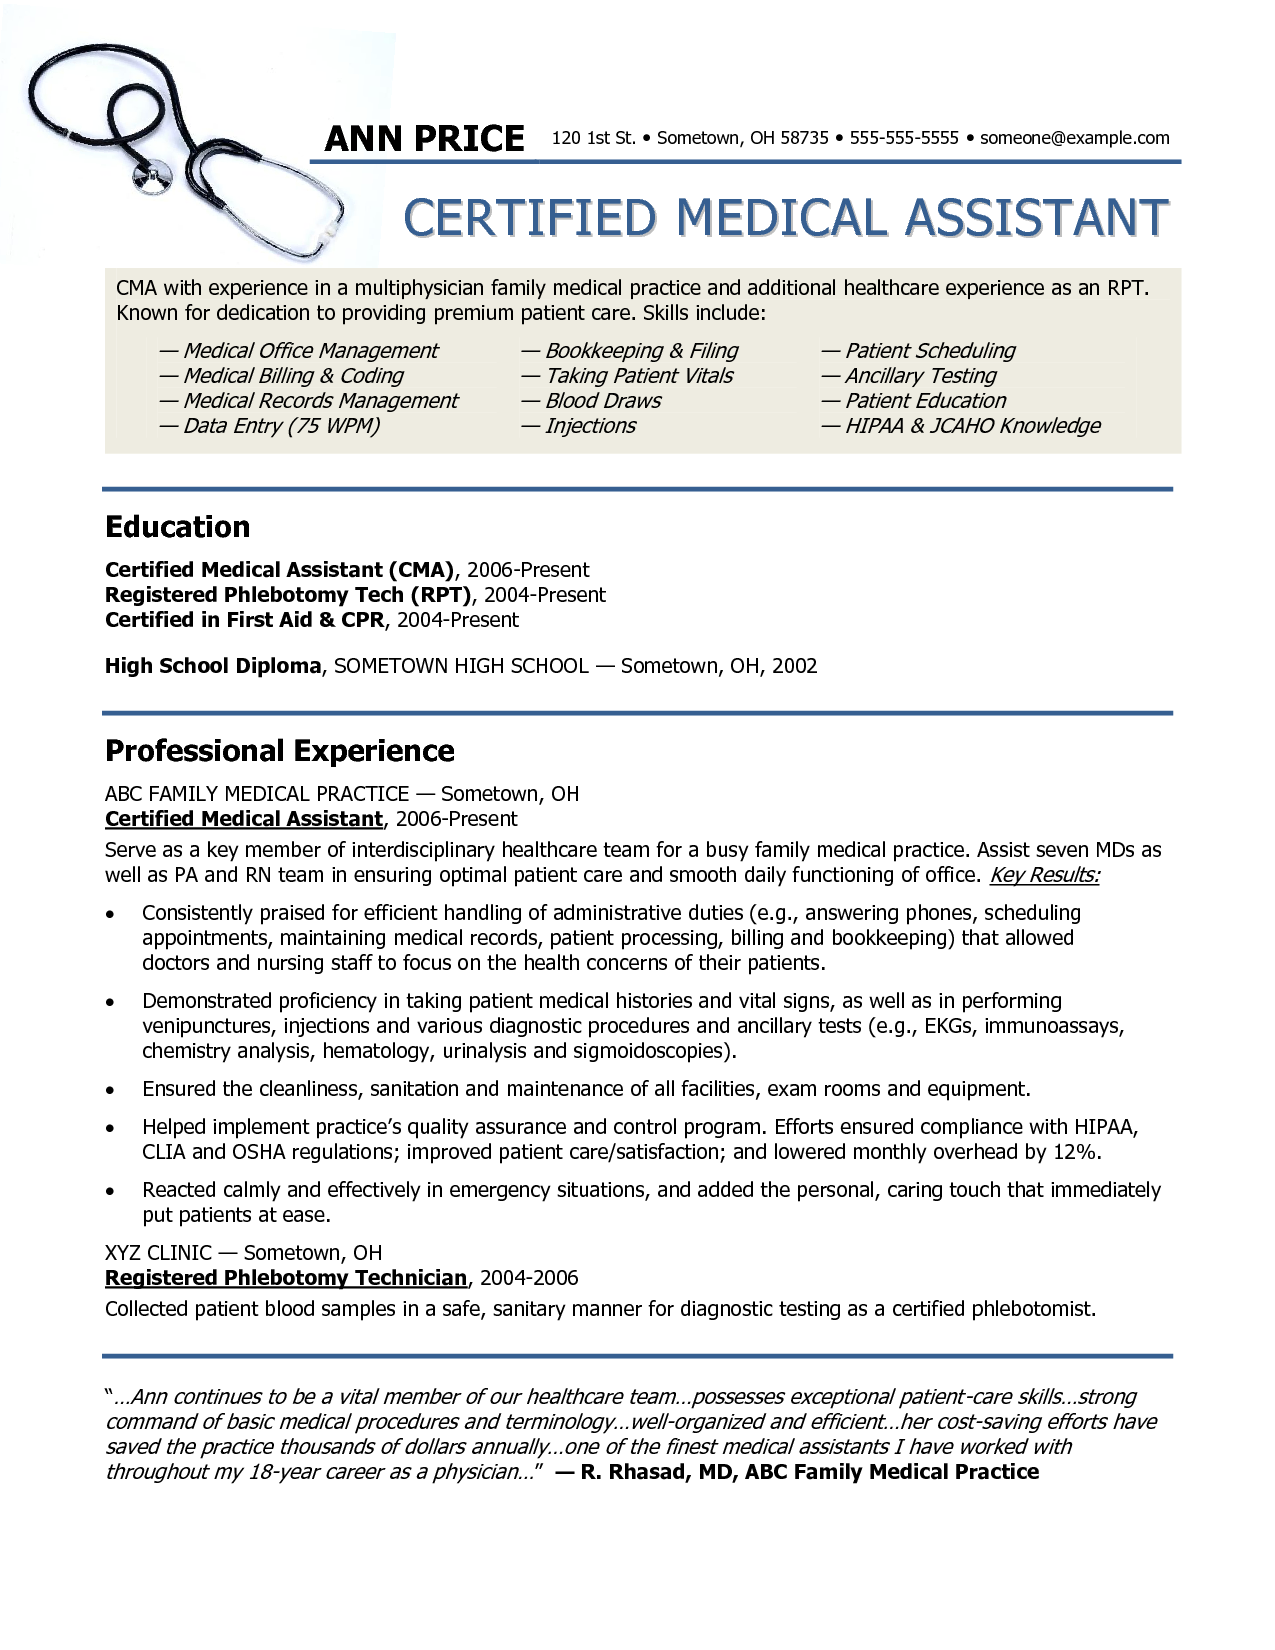 resume examples example of medical assistant resume regular medical assistant - Sample Medical Resume